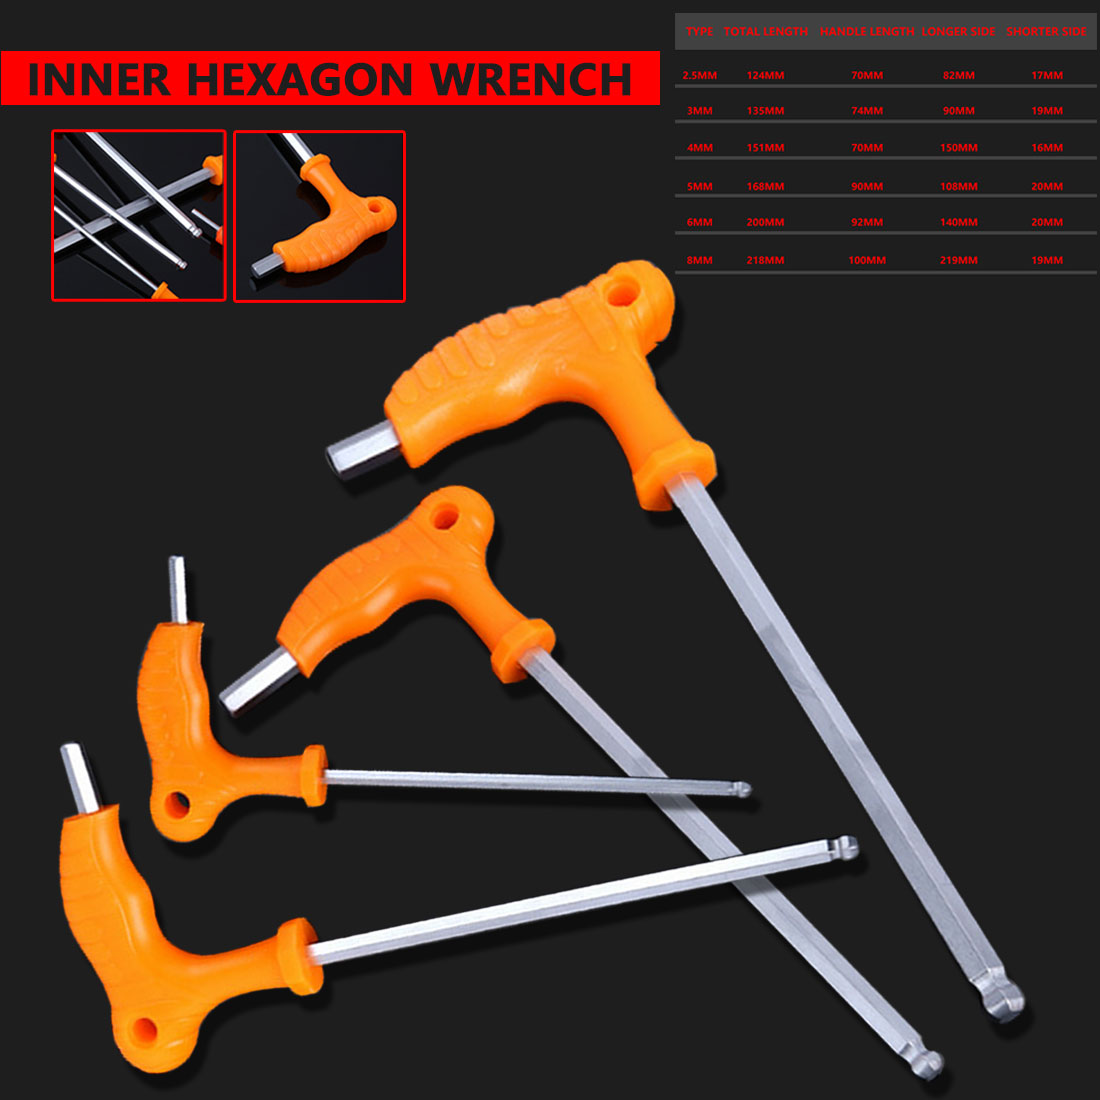 Hand Tools High-carbon Steel 2.5mm 3mm 4mm 5mm 6mm 8mm Inner Hexagon Pipe Wrench T Handle Allen Hex Key Wrench Spanner